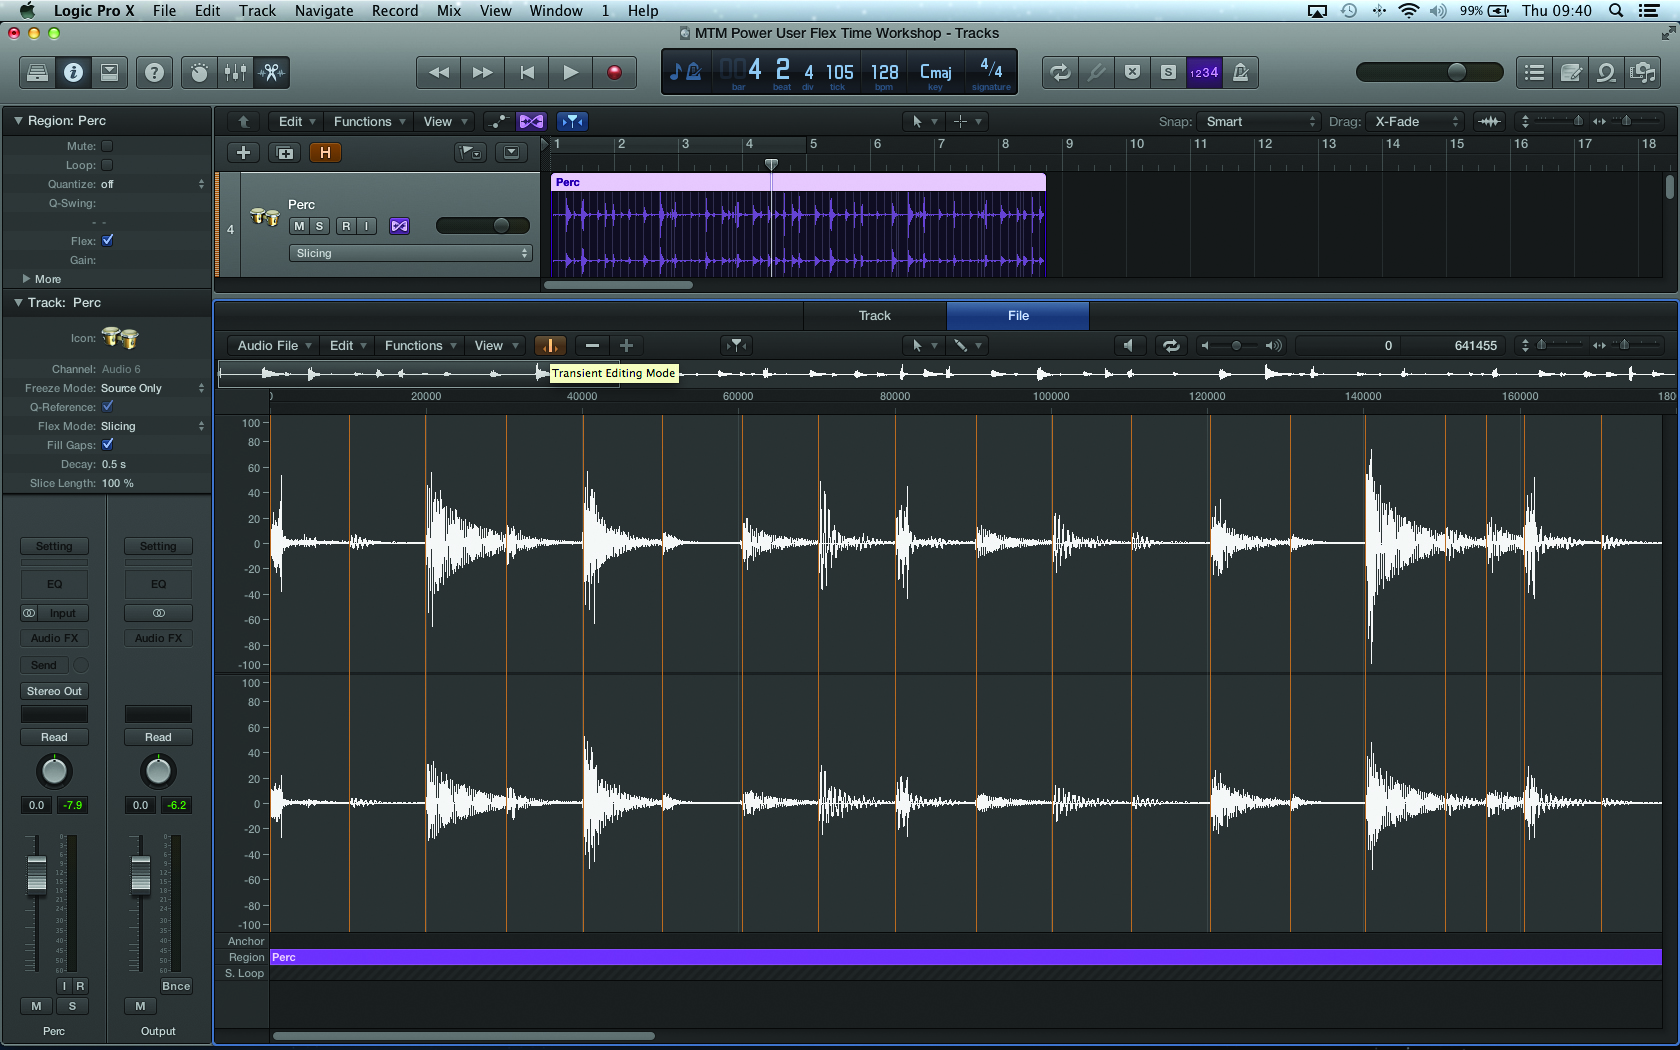 Logic Pro X Tutorial: Become a Power User Part 5 - Get To